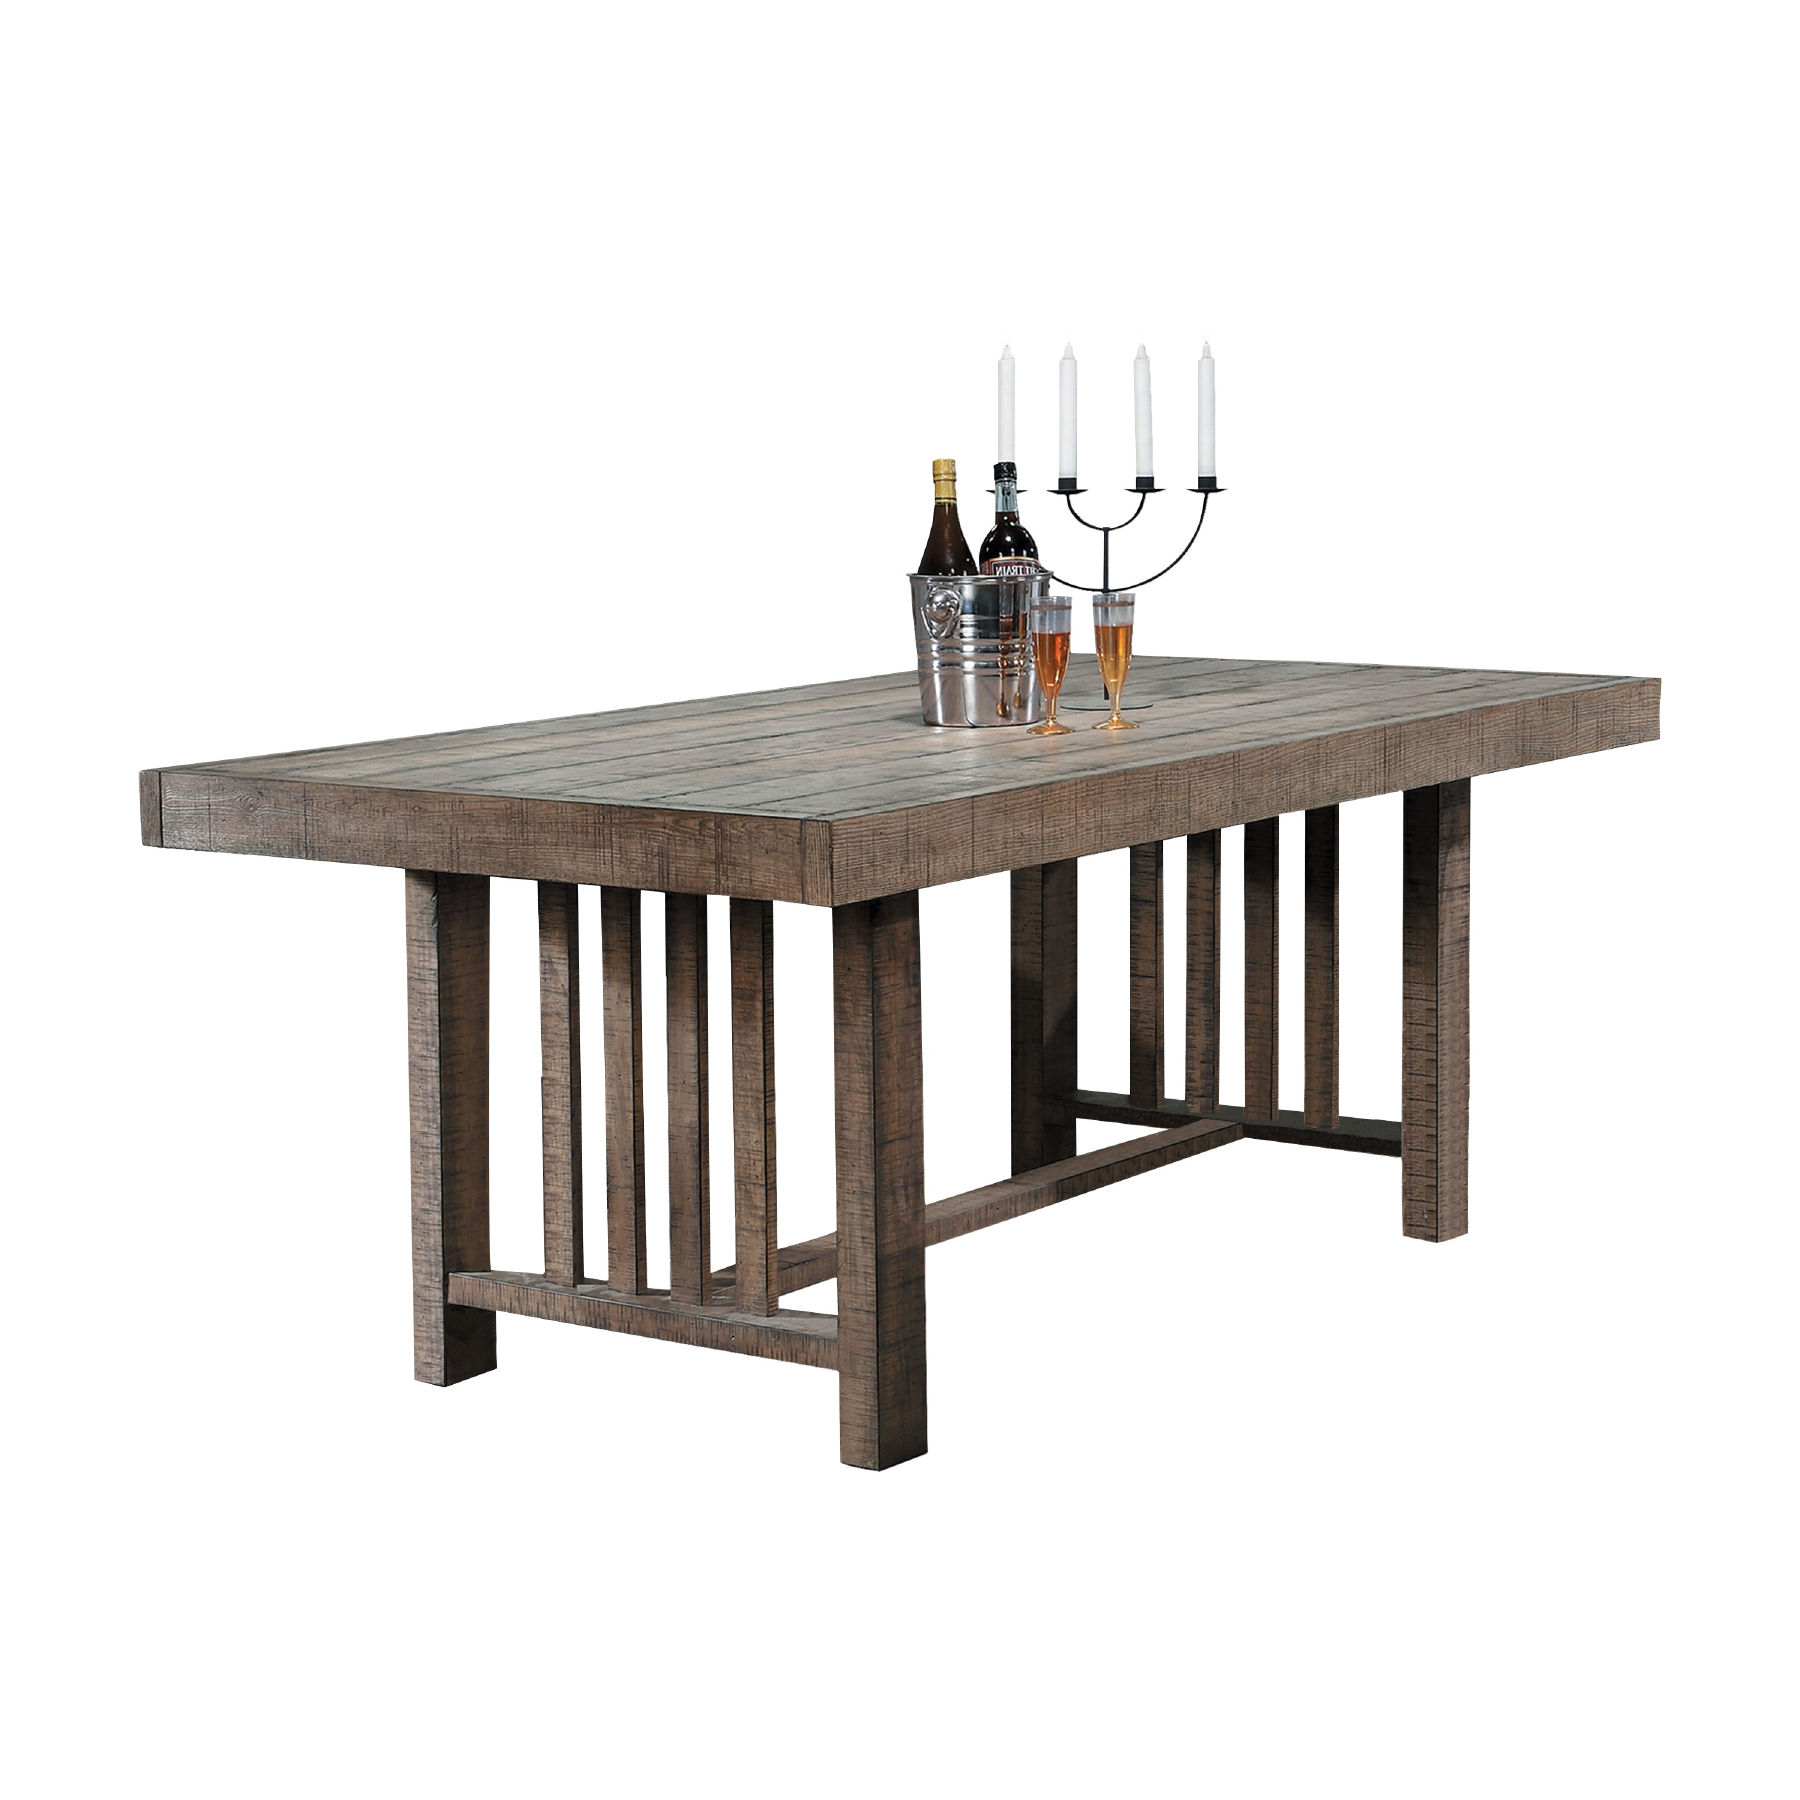 Home Elegance Codie Distressed Wood Dining Table | The ...